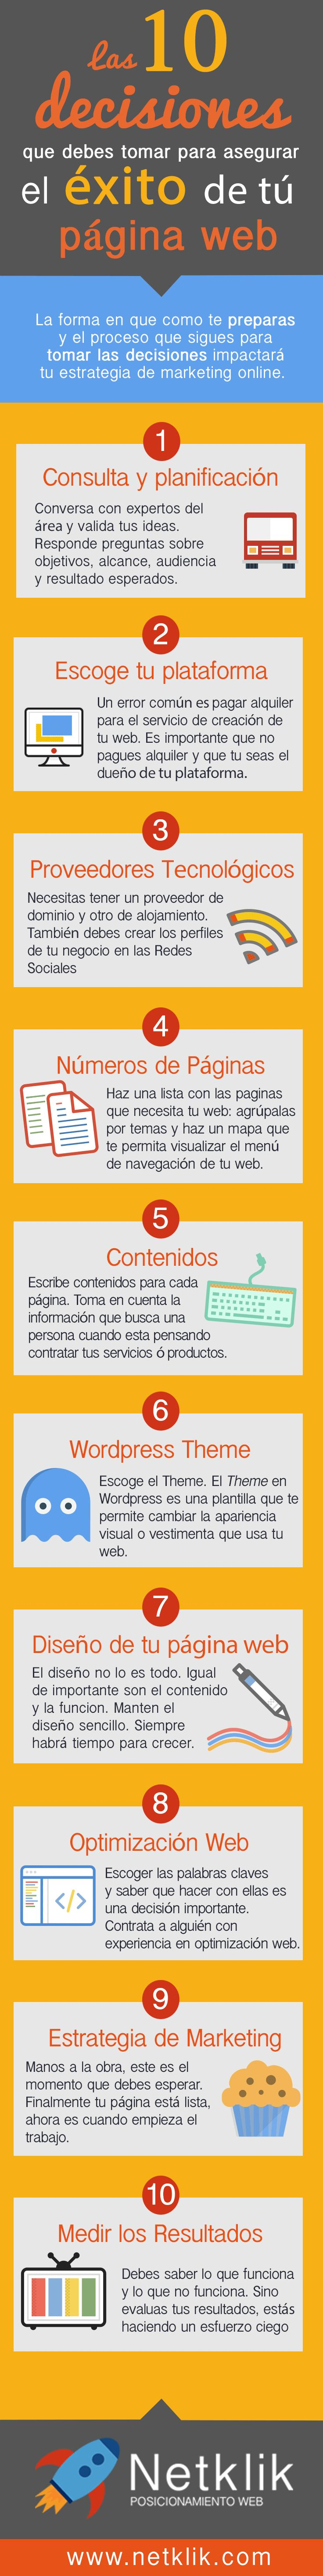 Tips para tu estrategia de marketing digital: 10 decisiones que debes tomar para asegurar el éxito de tu página web #infografia #estrategiasmarketingdigital